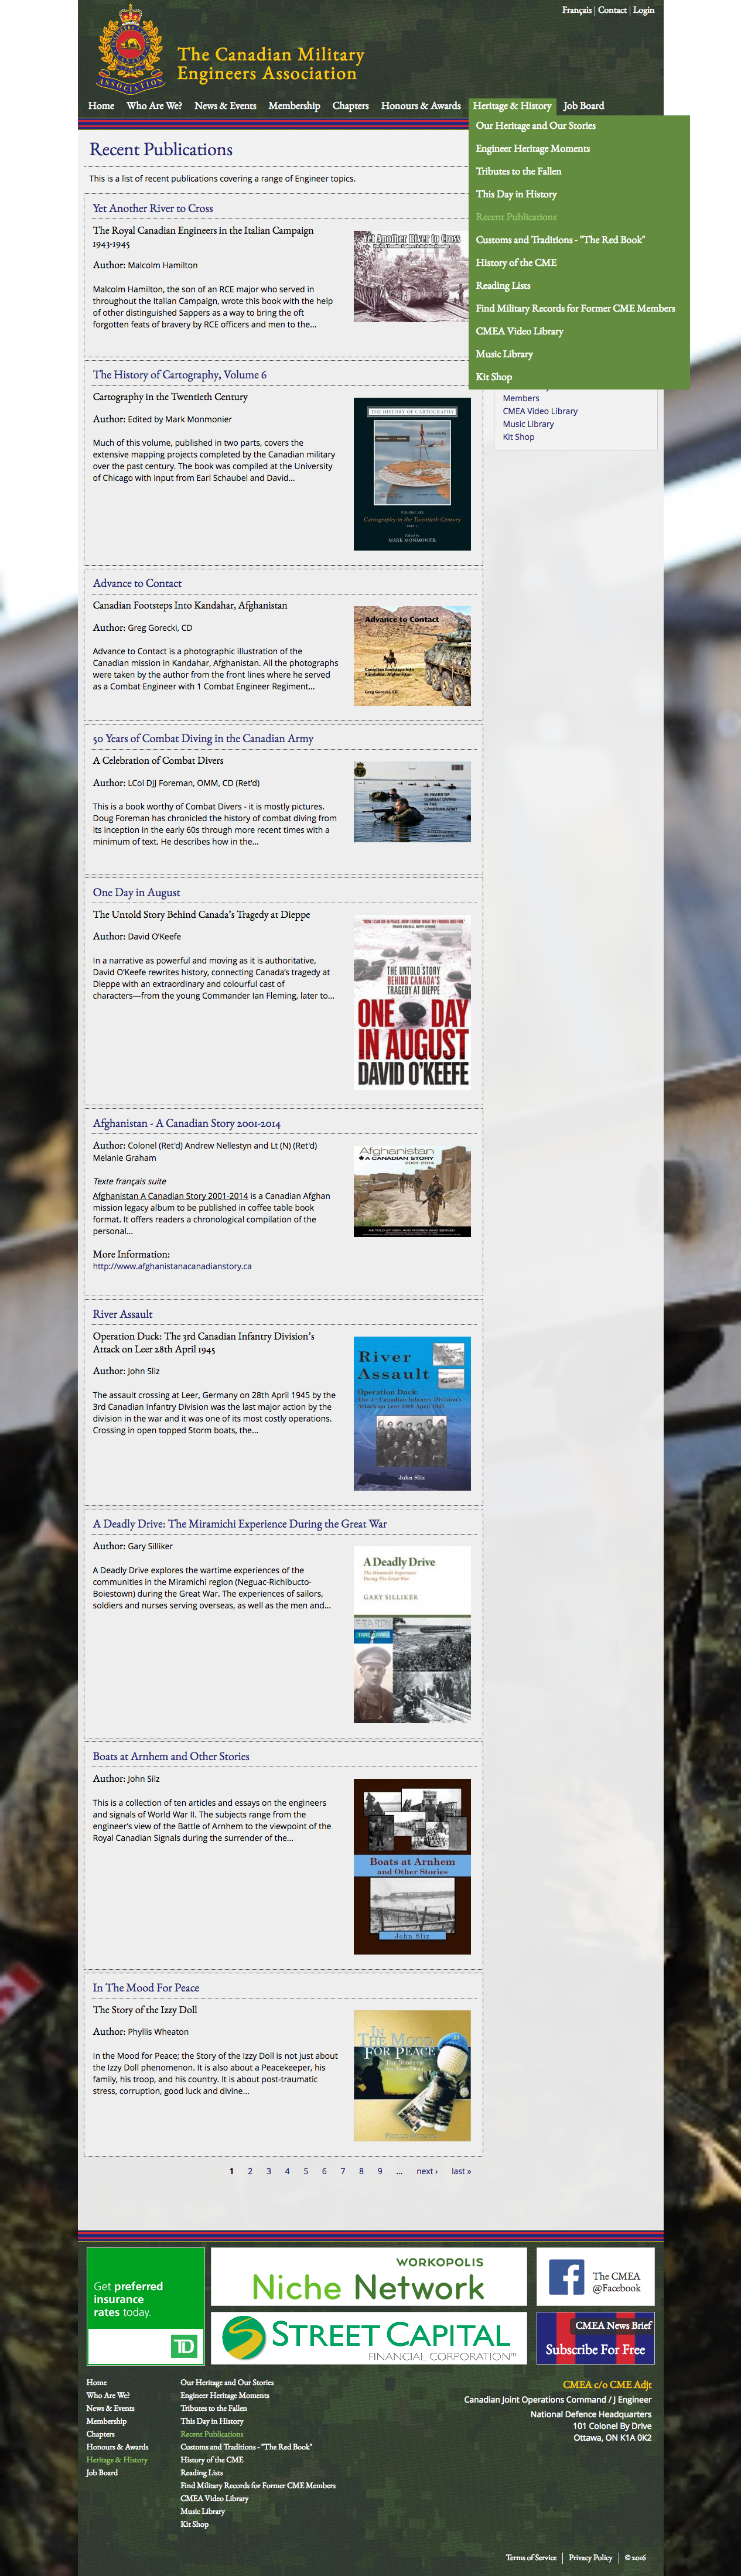 The Canadian Military Engineers Association